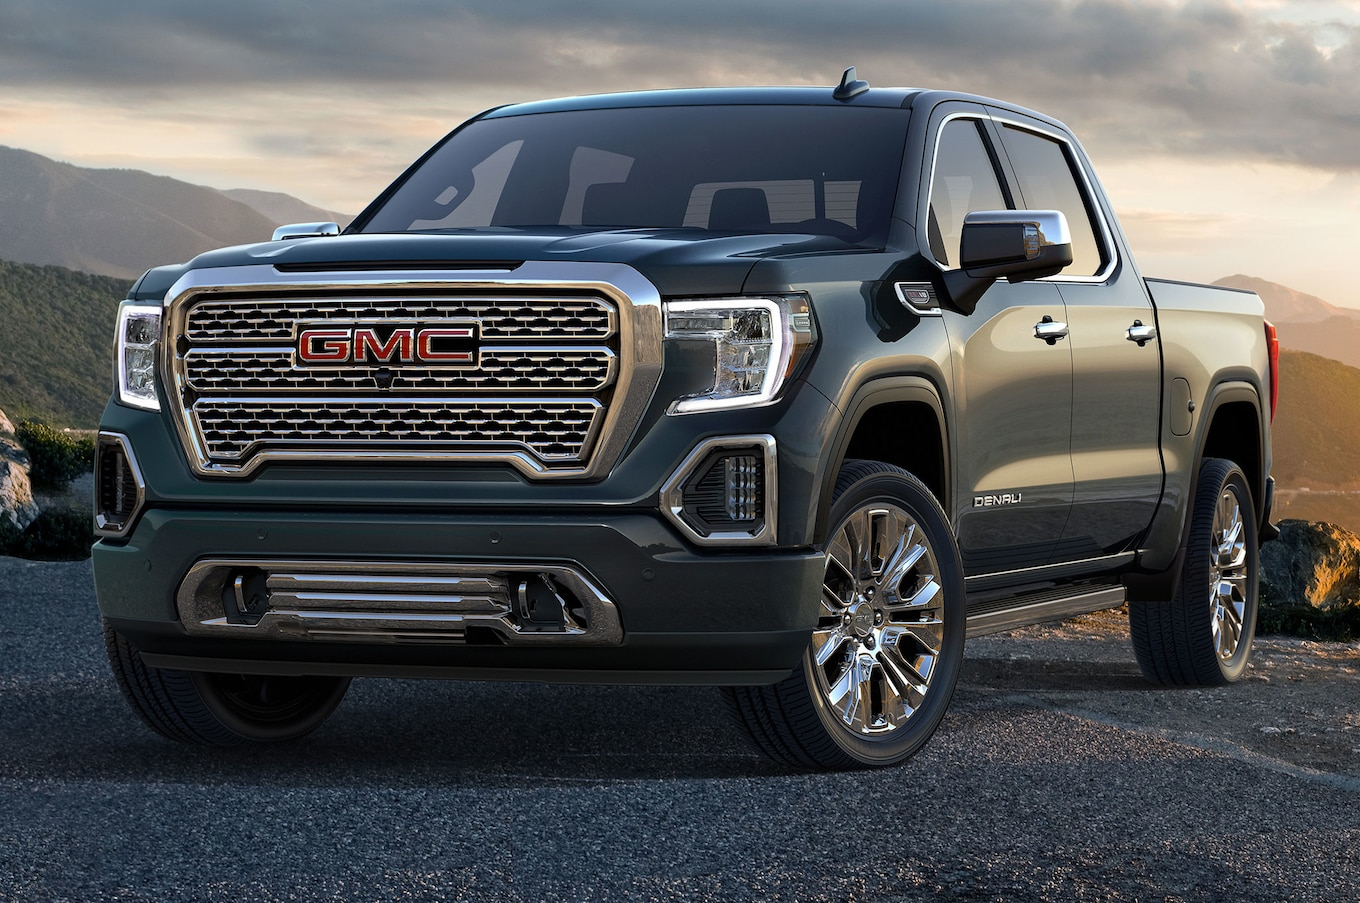 34 All New 2019 GMC Sierra 2500Hd Release Date and Concept